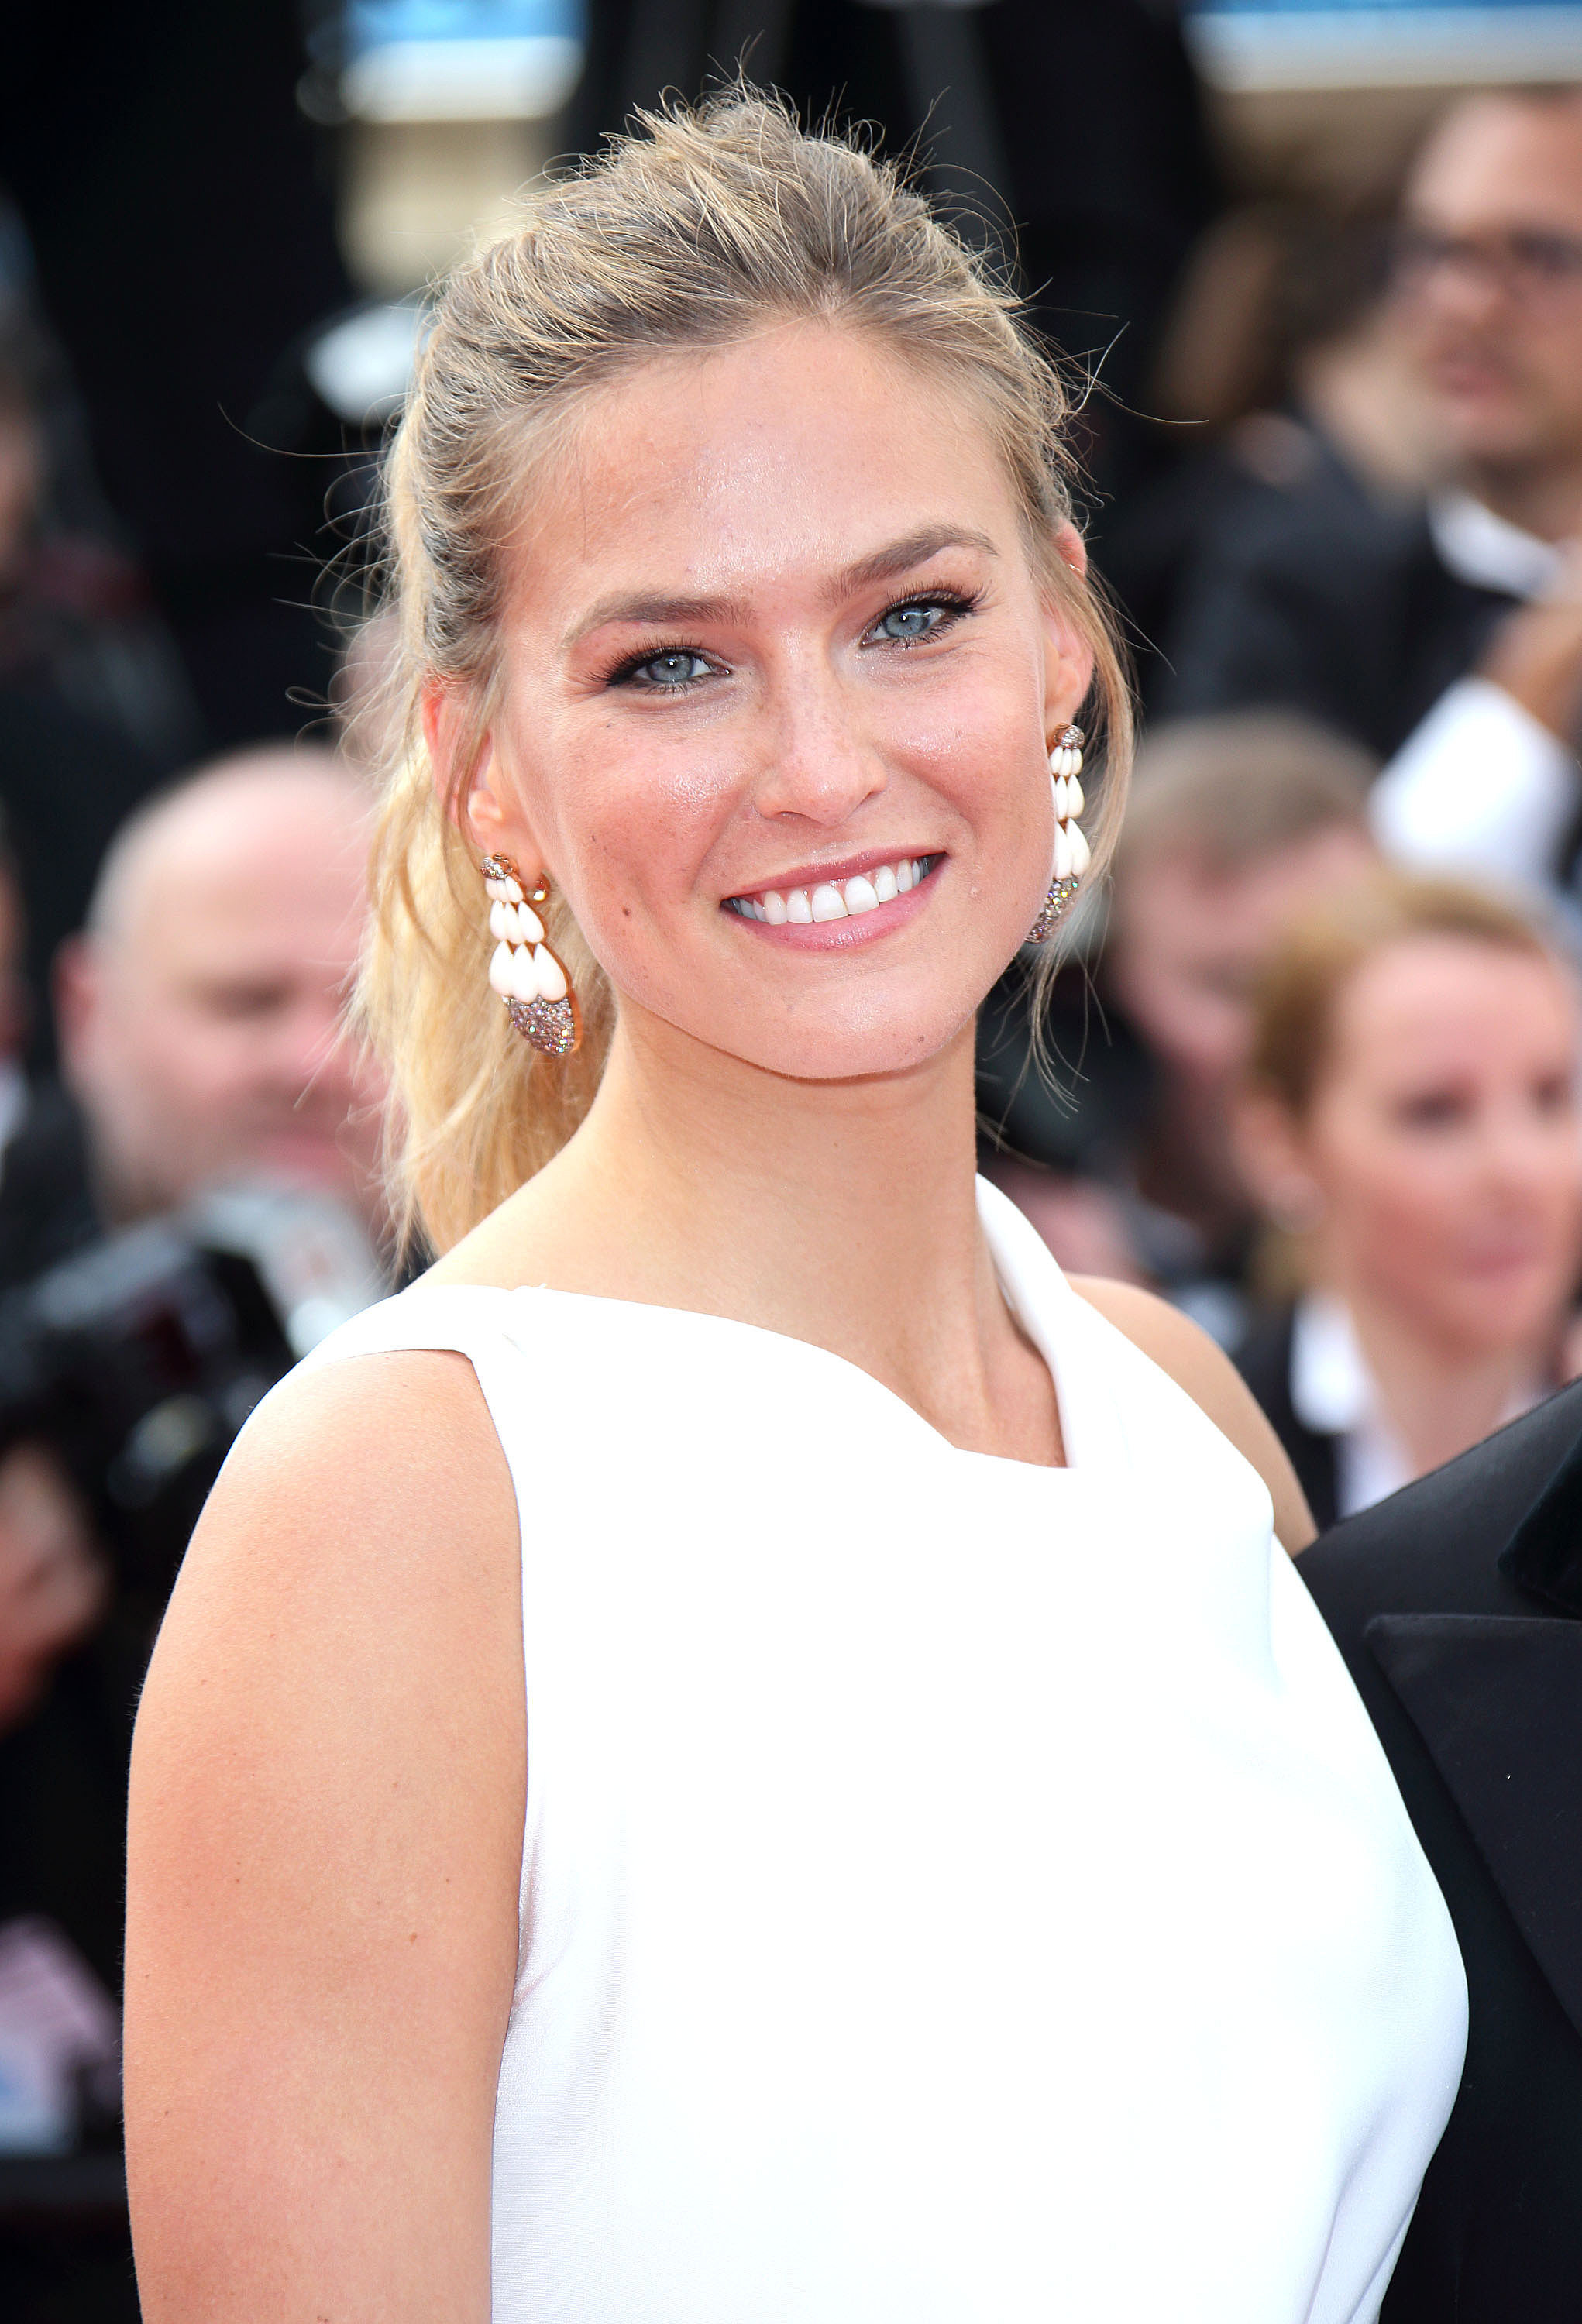 Bar Refaeli | All the Gorgeous Stars at the Cannes Film Festival ...